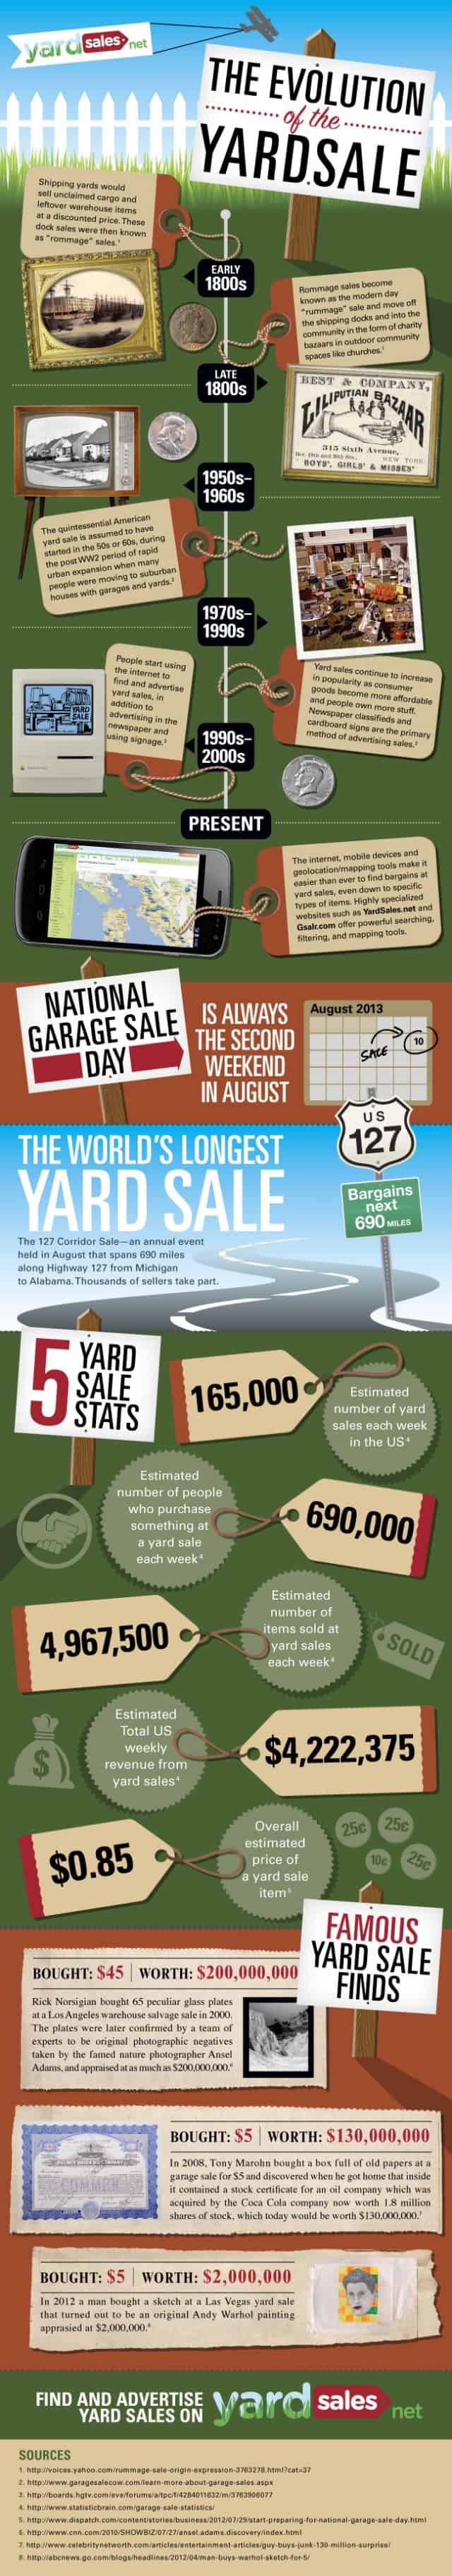 fun-yard-sale-facts_51db168d19774-640x3650